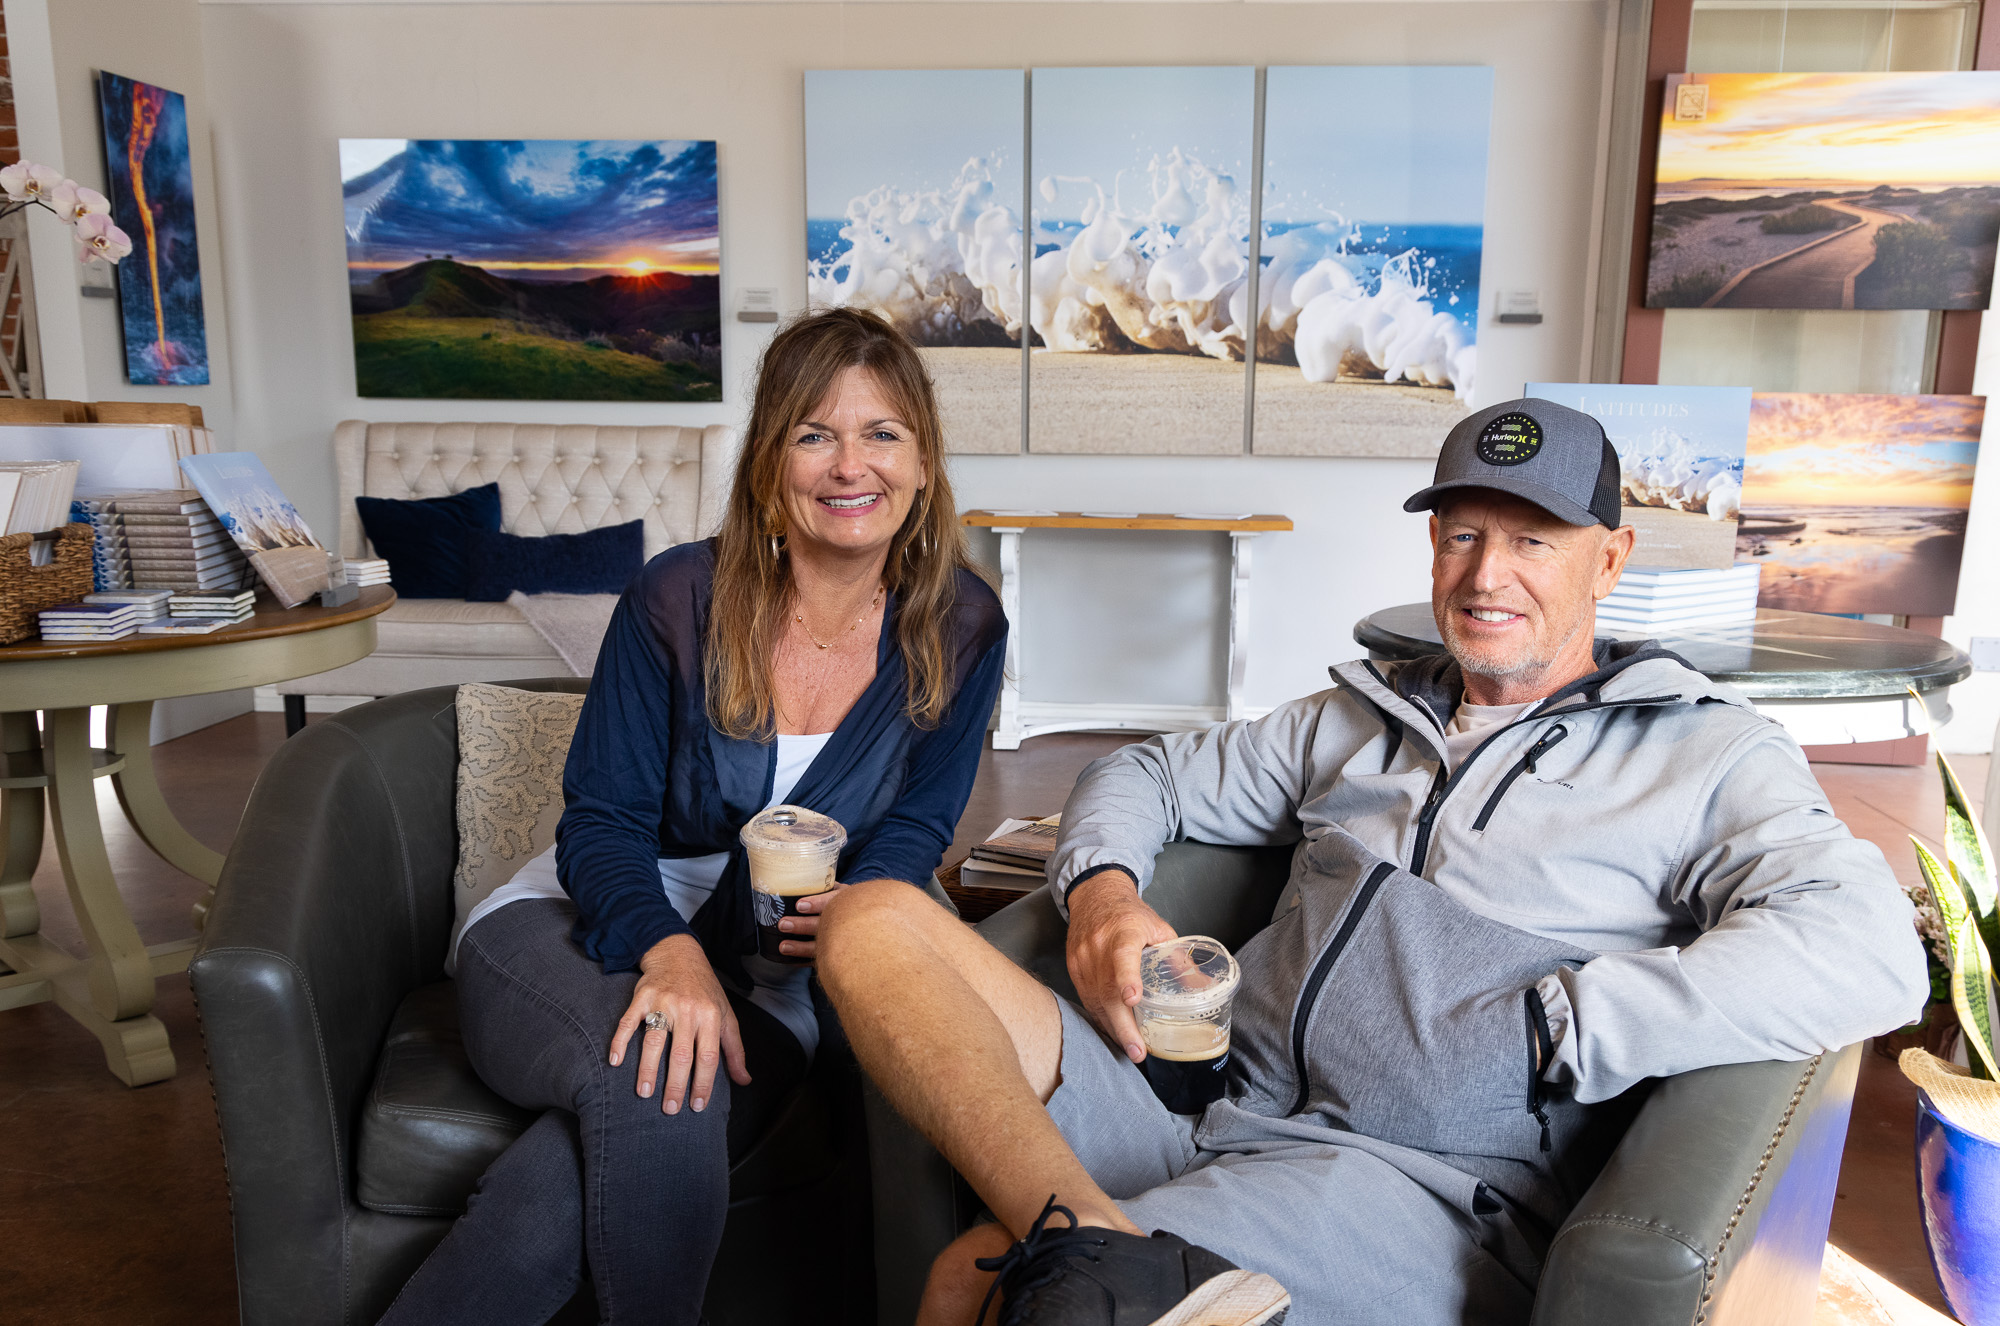 Stephanie Hogue and Steve Munch in Ventura at Latitudes Gallery